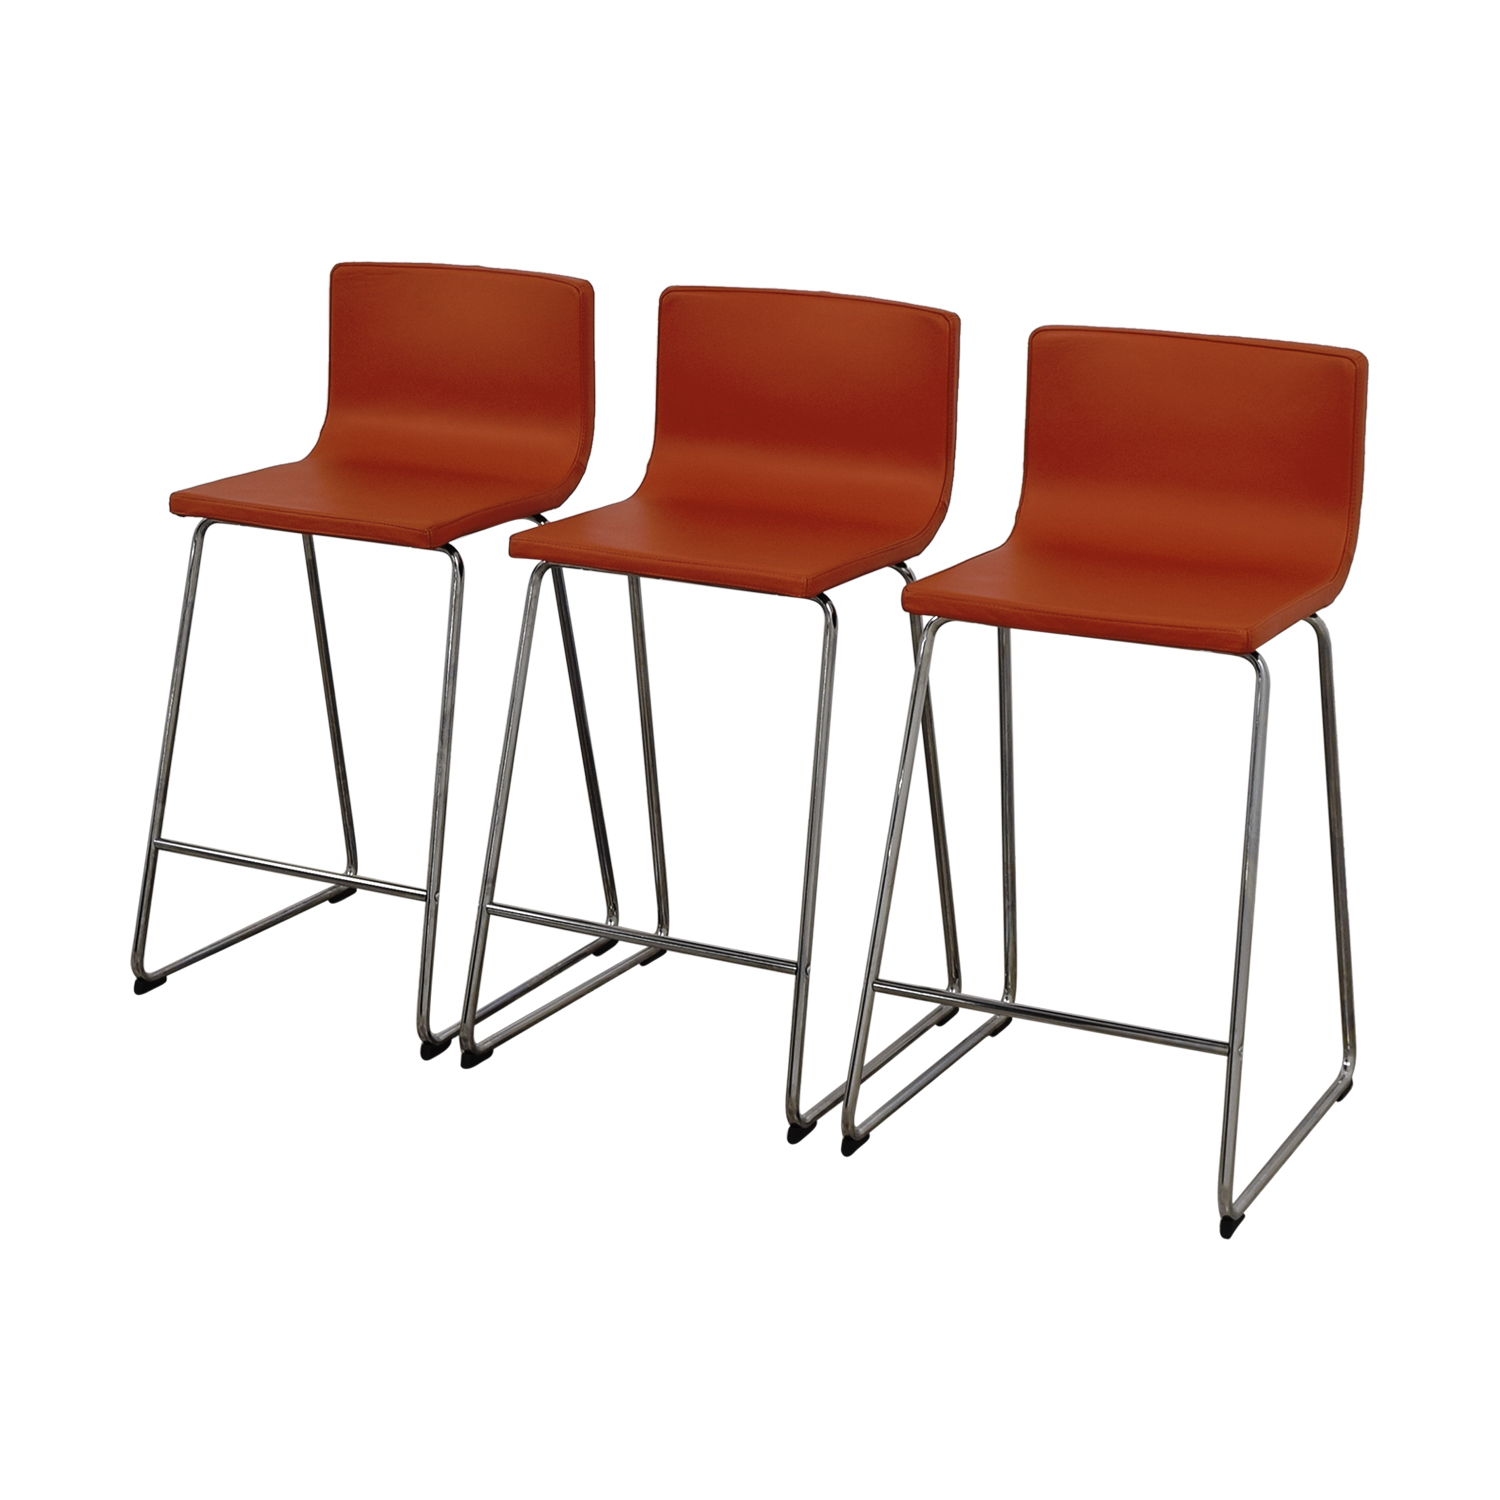 36 Inch Bar Stools Ikea 86 Off Ikea Ikea Bernhard Orange Bar Stools Chairs